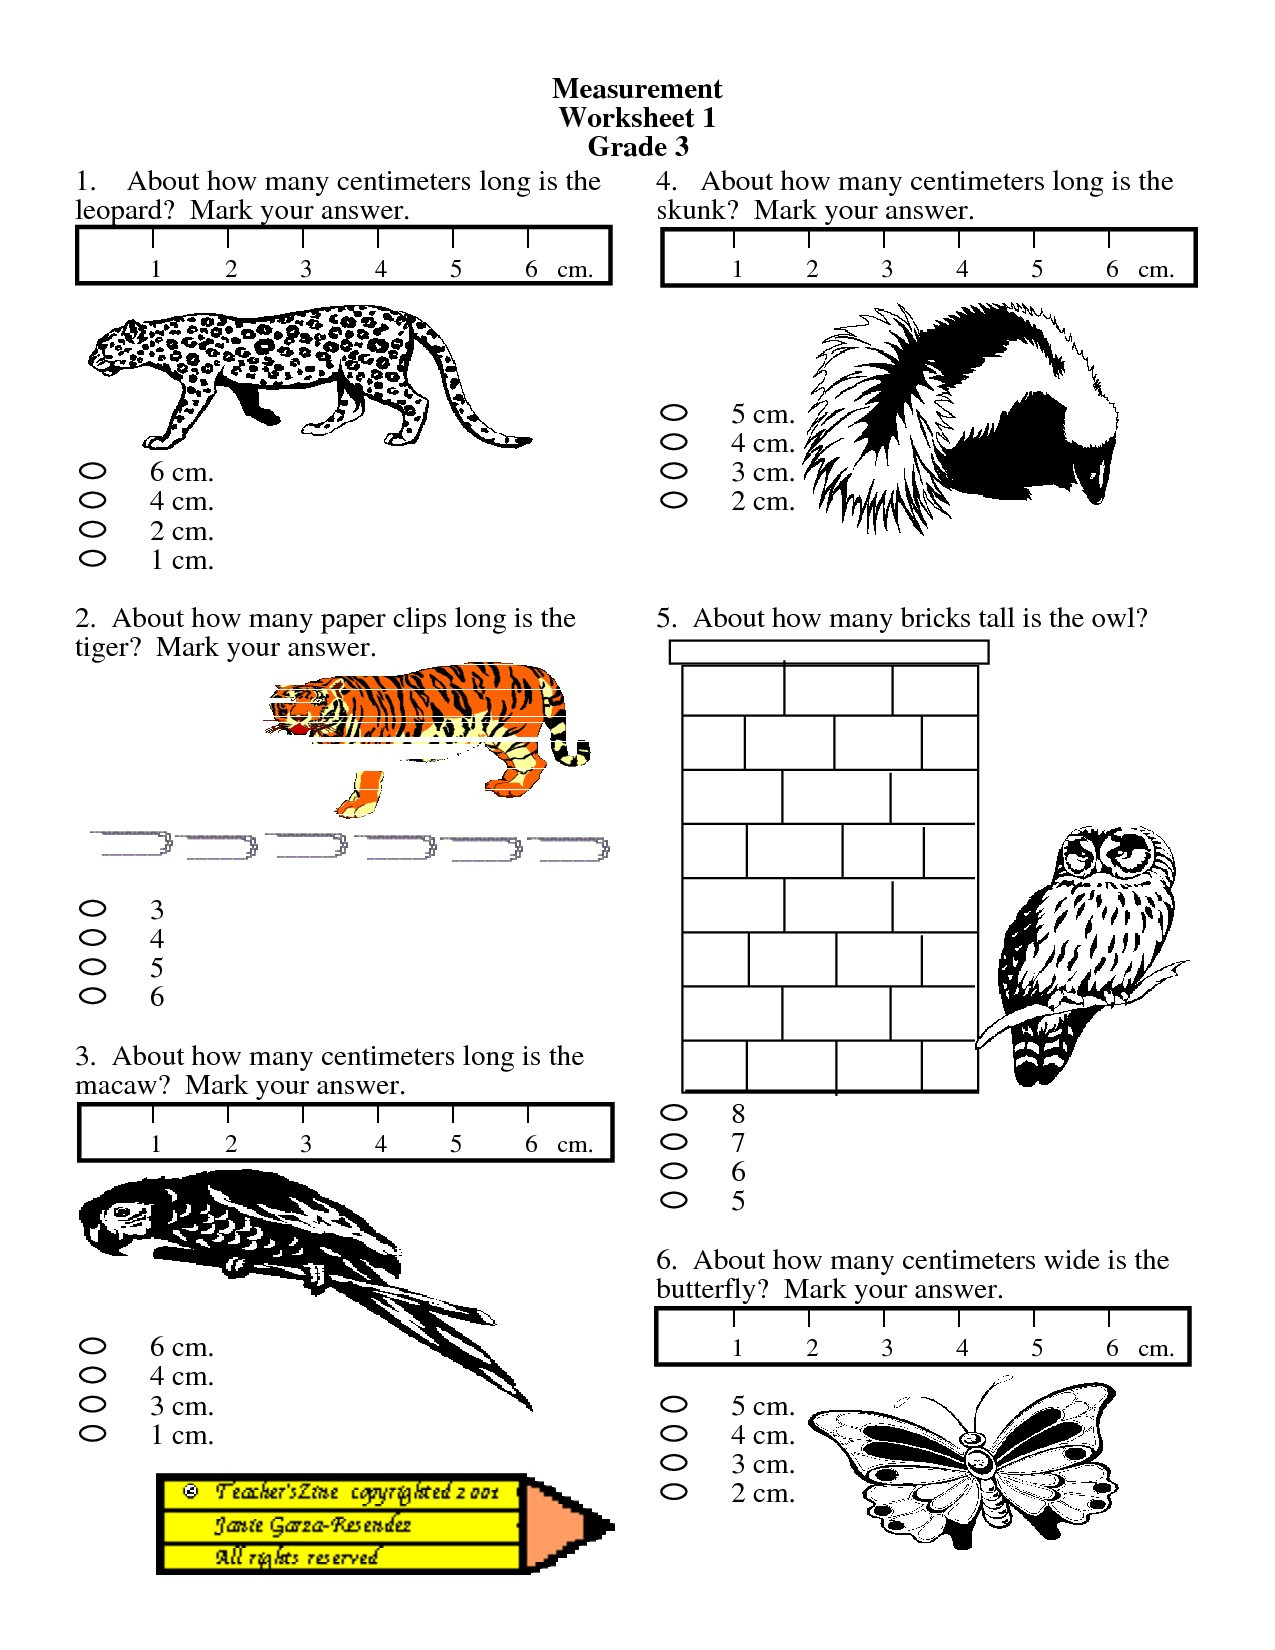 Measurement Worksheets for 3rd Grade Math Worksheet Tremendous Measurement Worksheets Grade 3